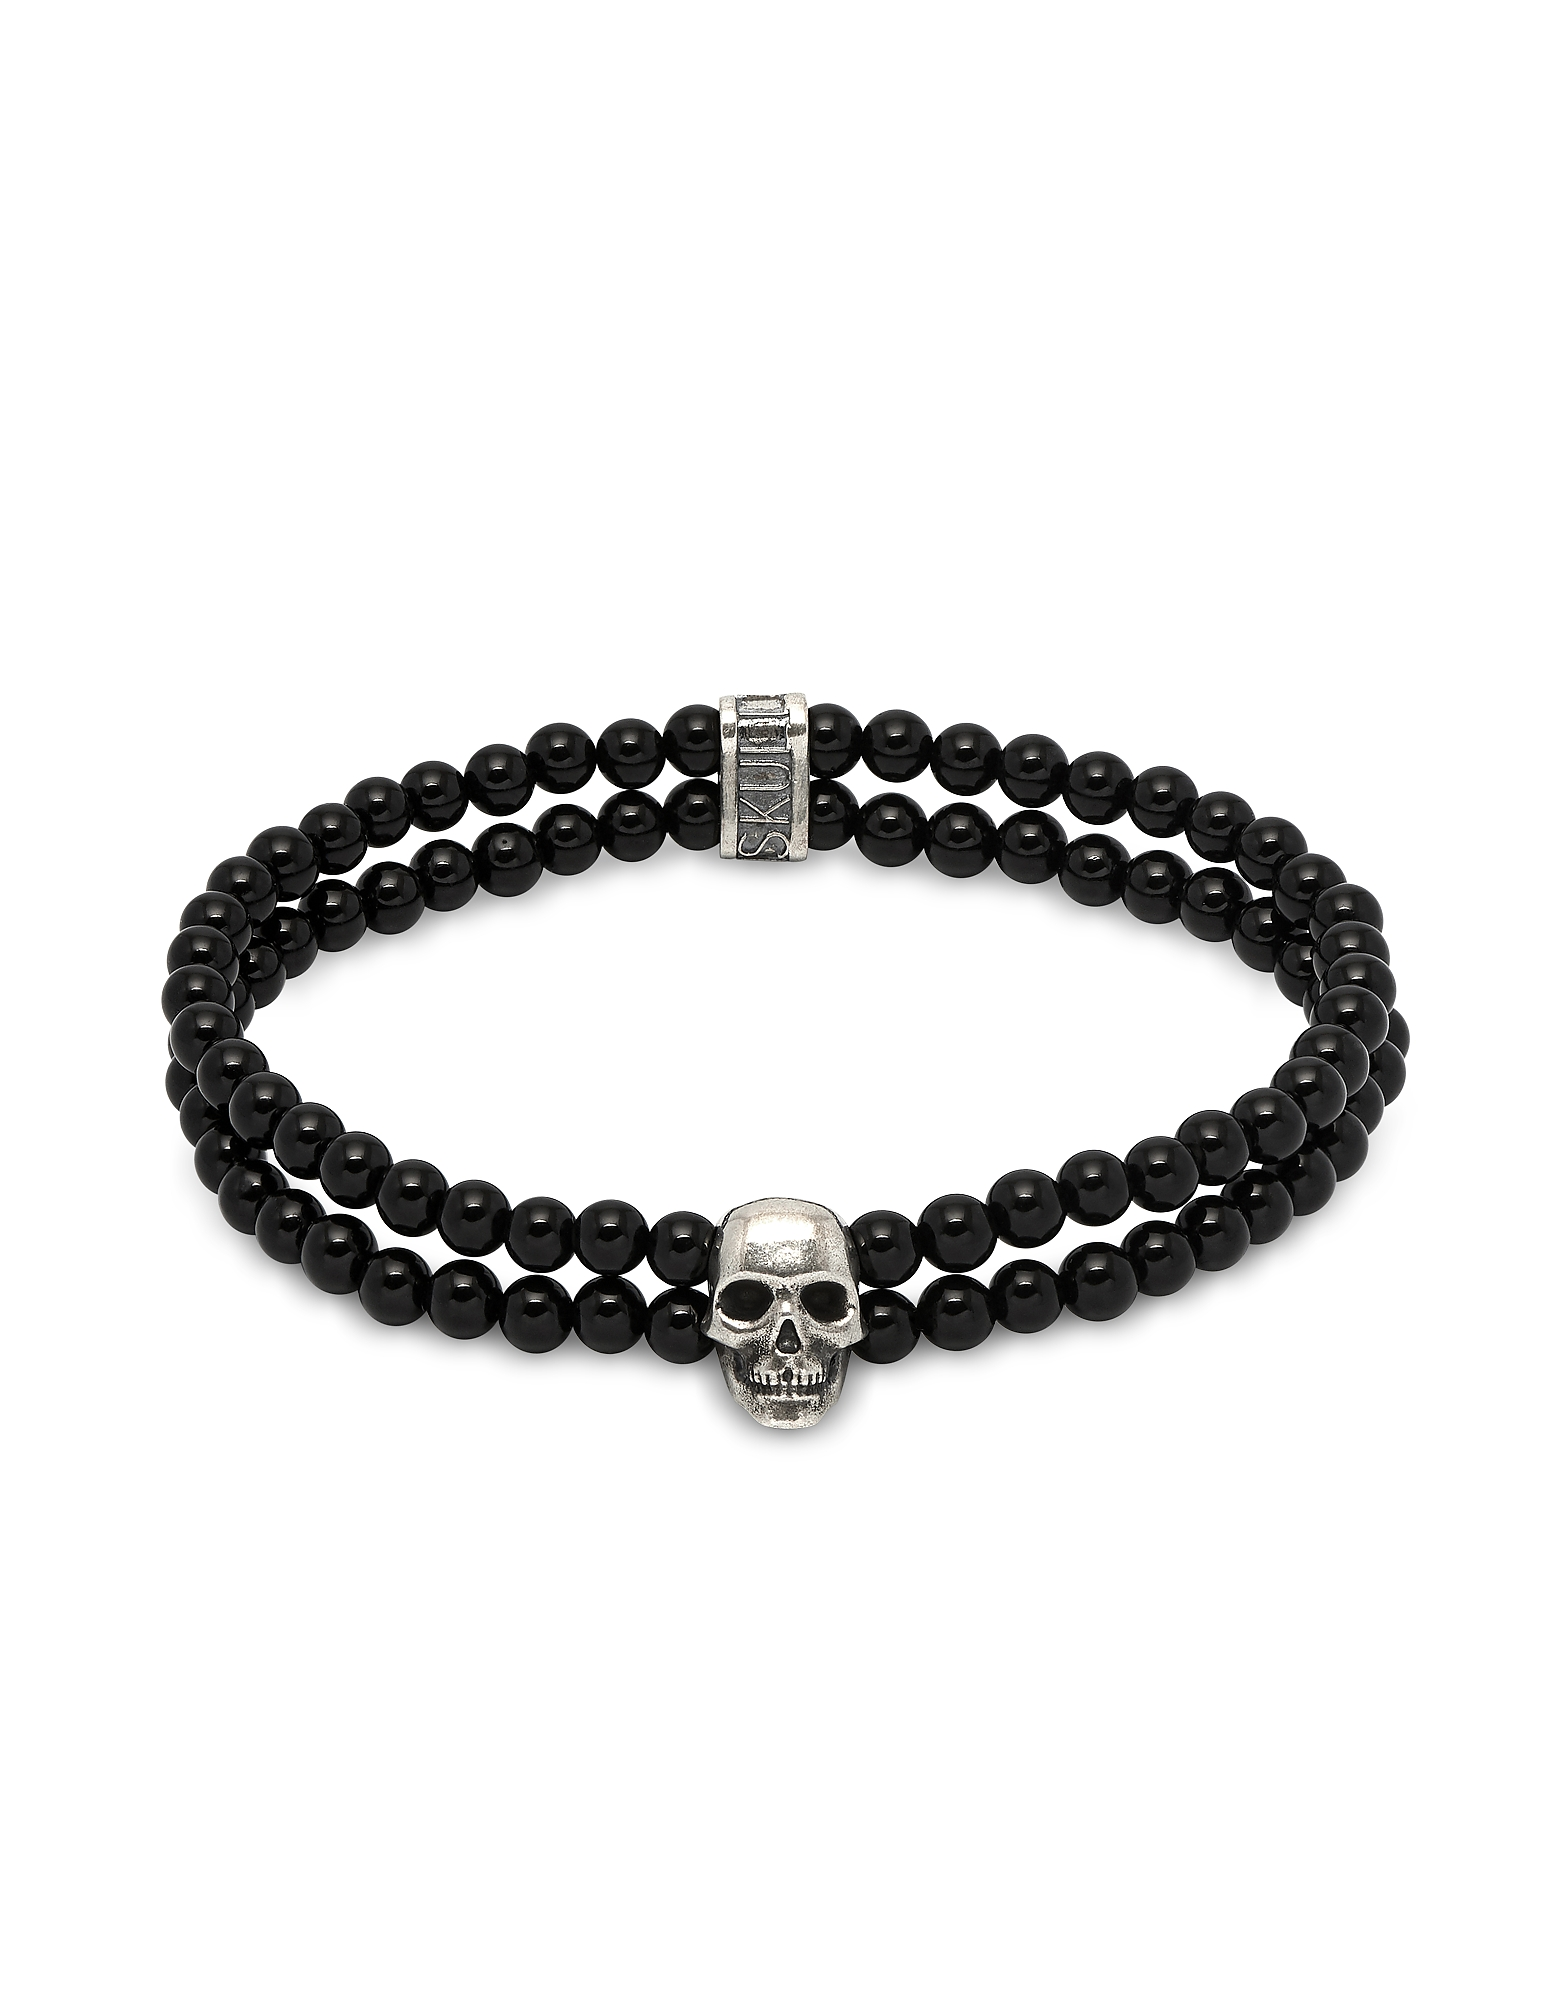 Double Row Beaded Bracelet With Skull Charmin Black Onyx & Silver